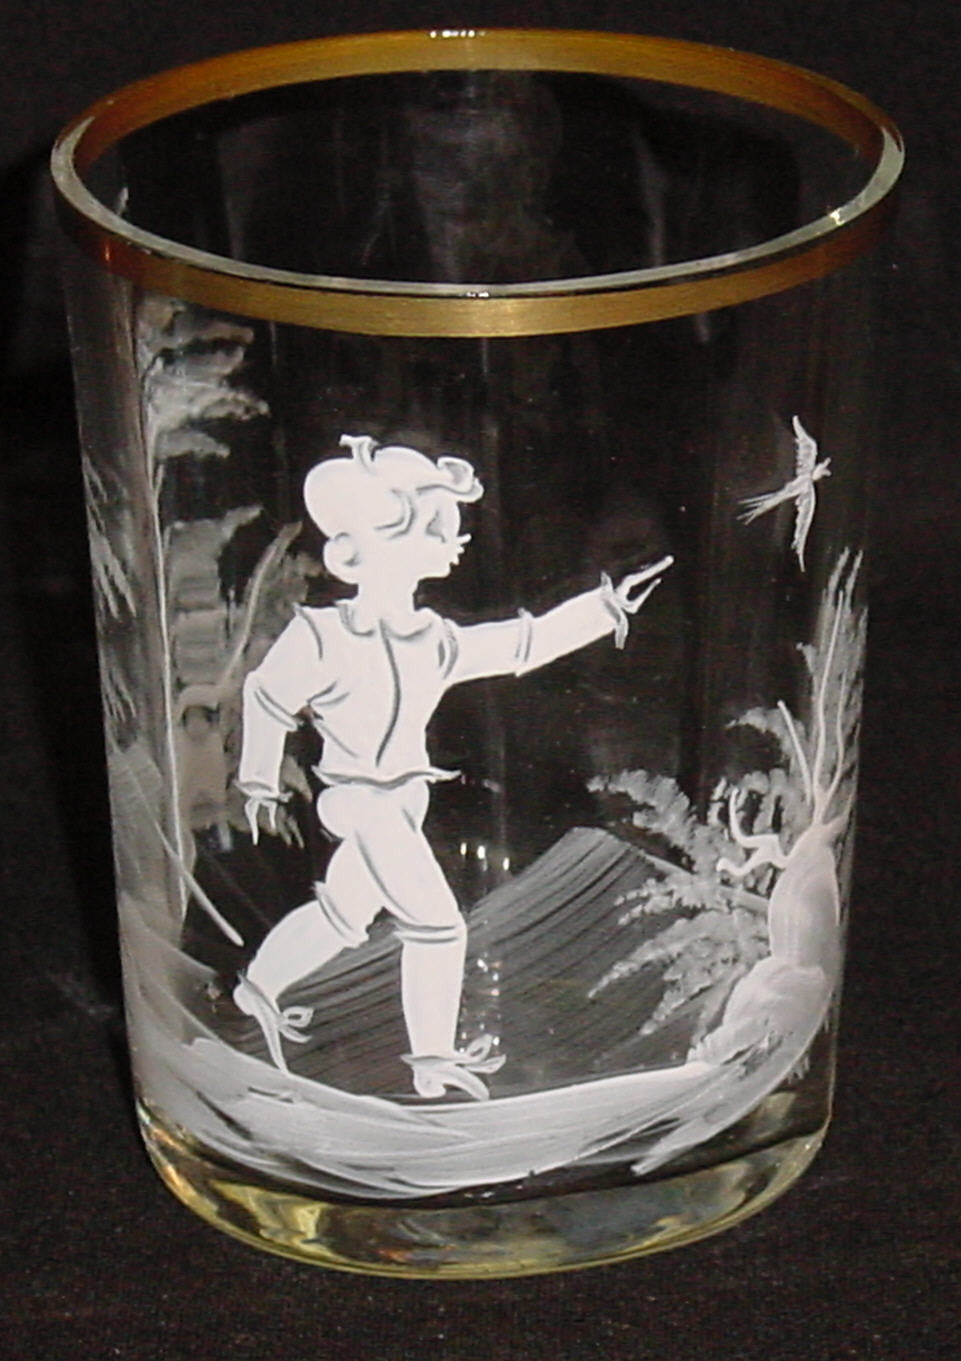 455056 Crystal Tumbler W/White Pntd Mary Gregor Boy, Bird & Trees,, Bohemian Glassware, Kosherak, - ReeceFurniture.com - Free Local Pick Ups: Frankenmuth, MI, Indianapolis, IN, Chicago Ridge, IL, and Detroit, MI